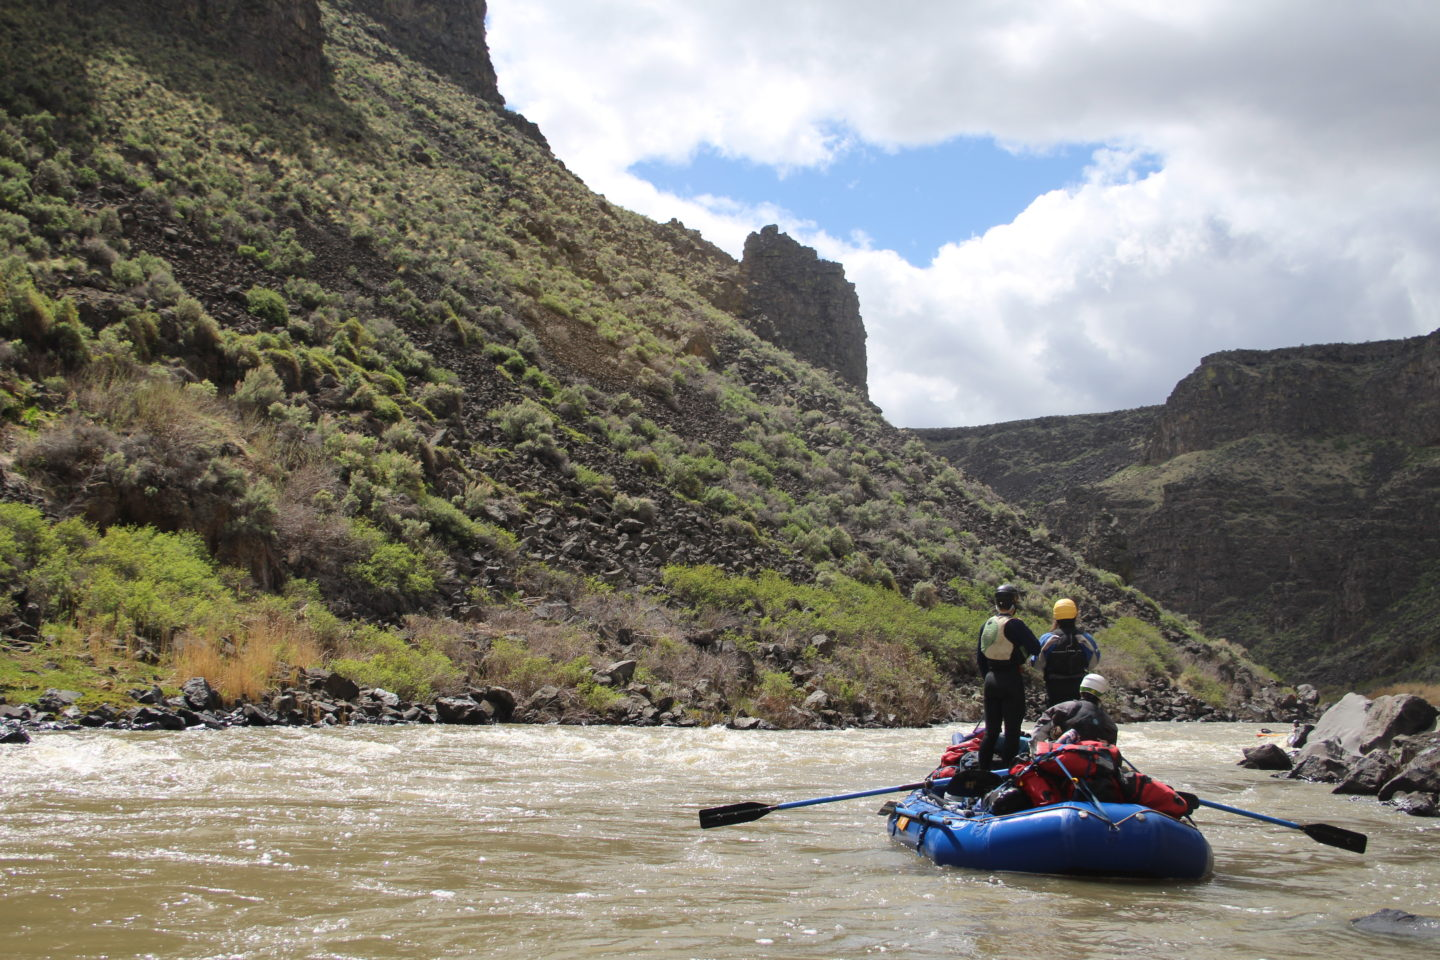 Gearing Up for Idaho Expeditions